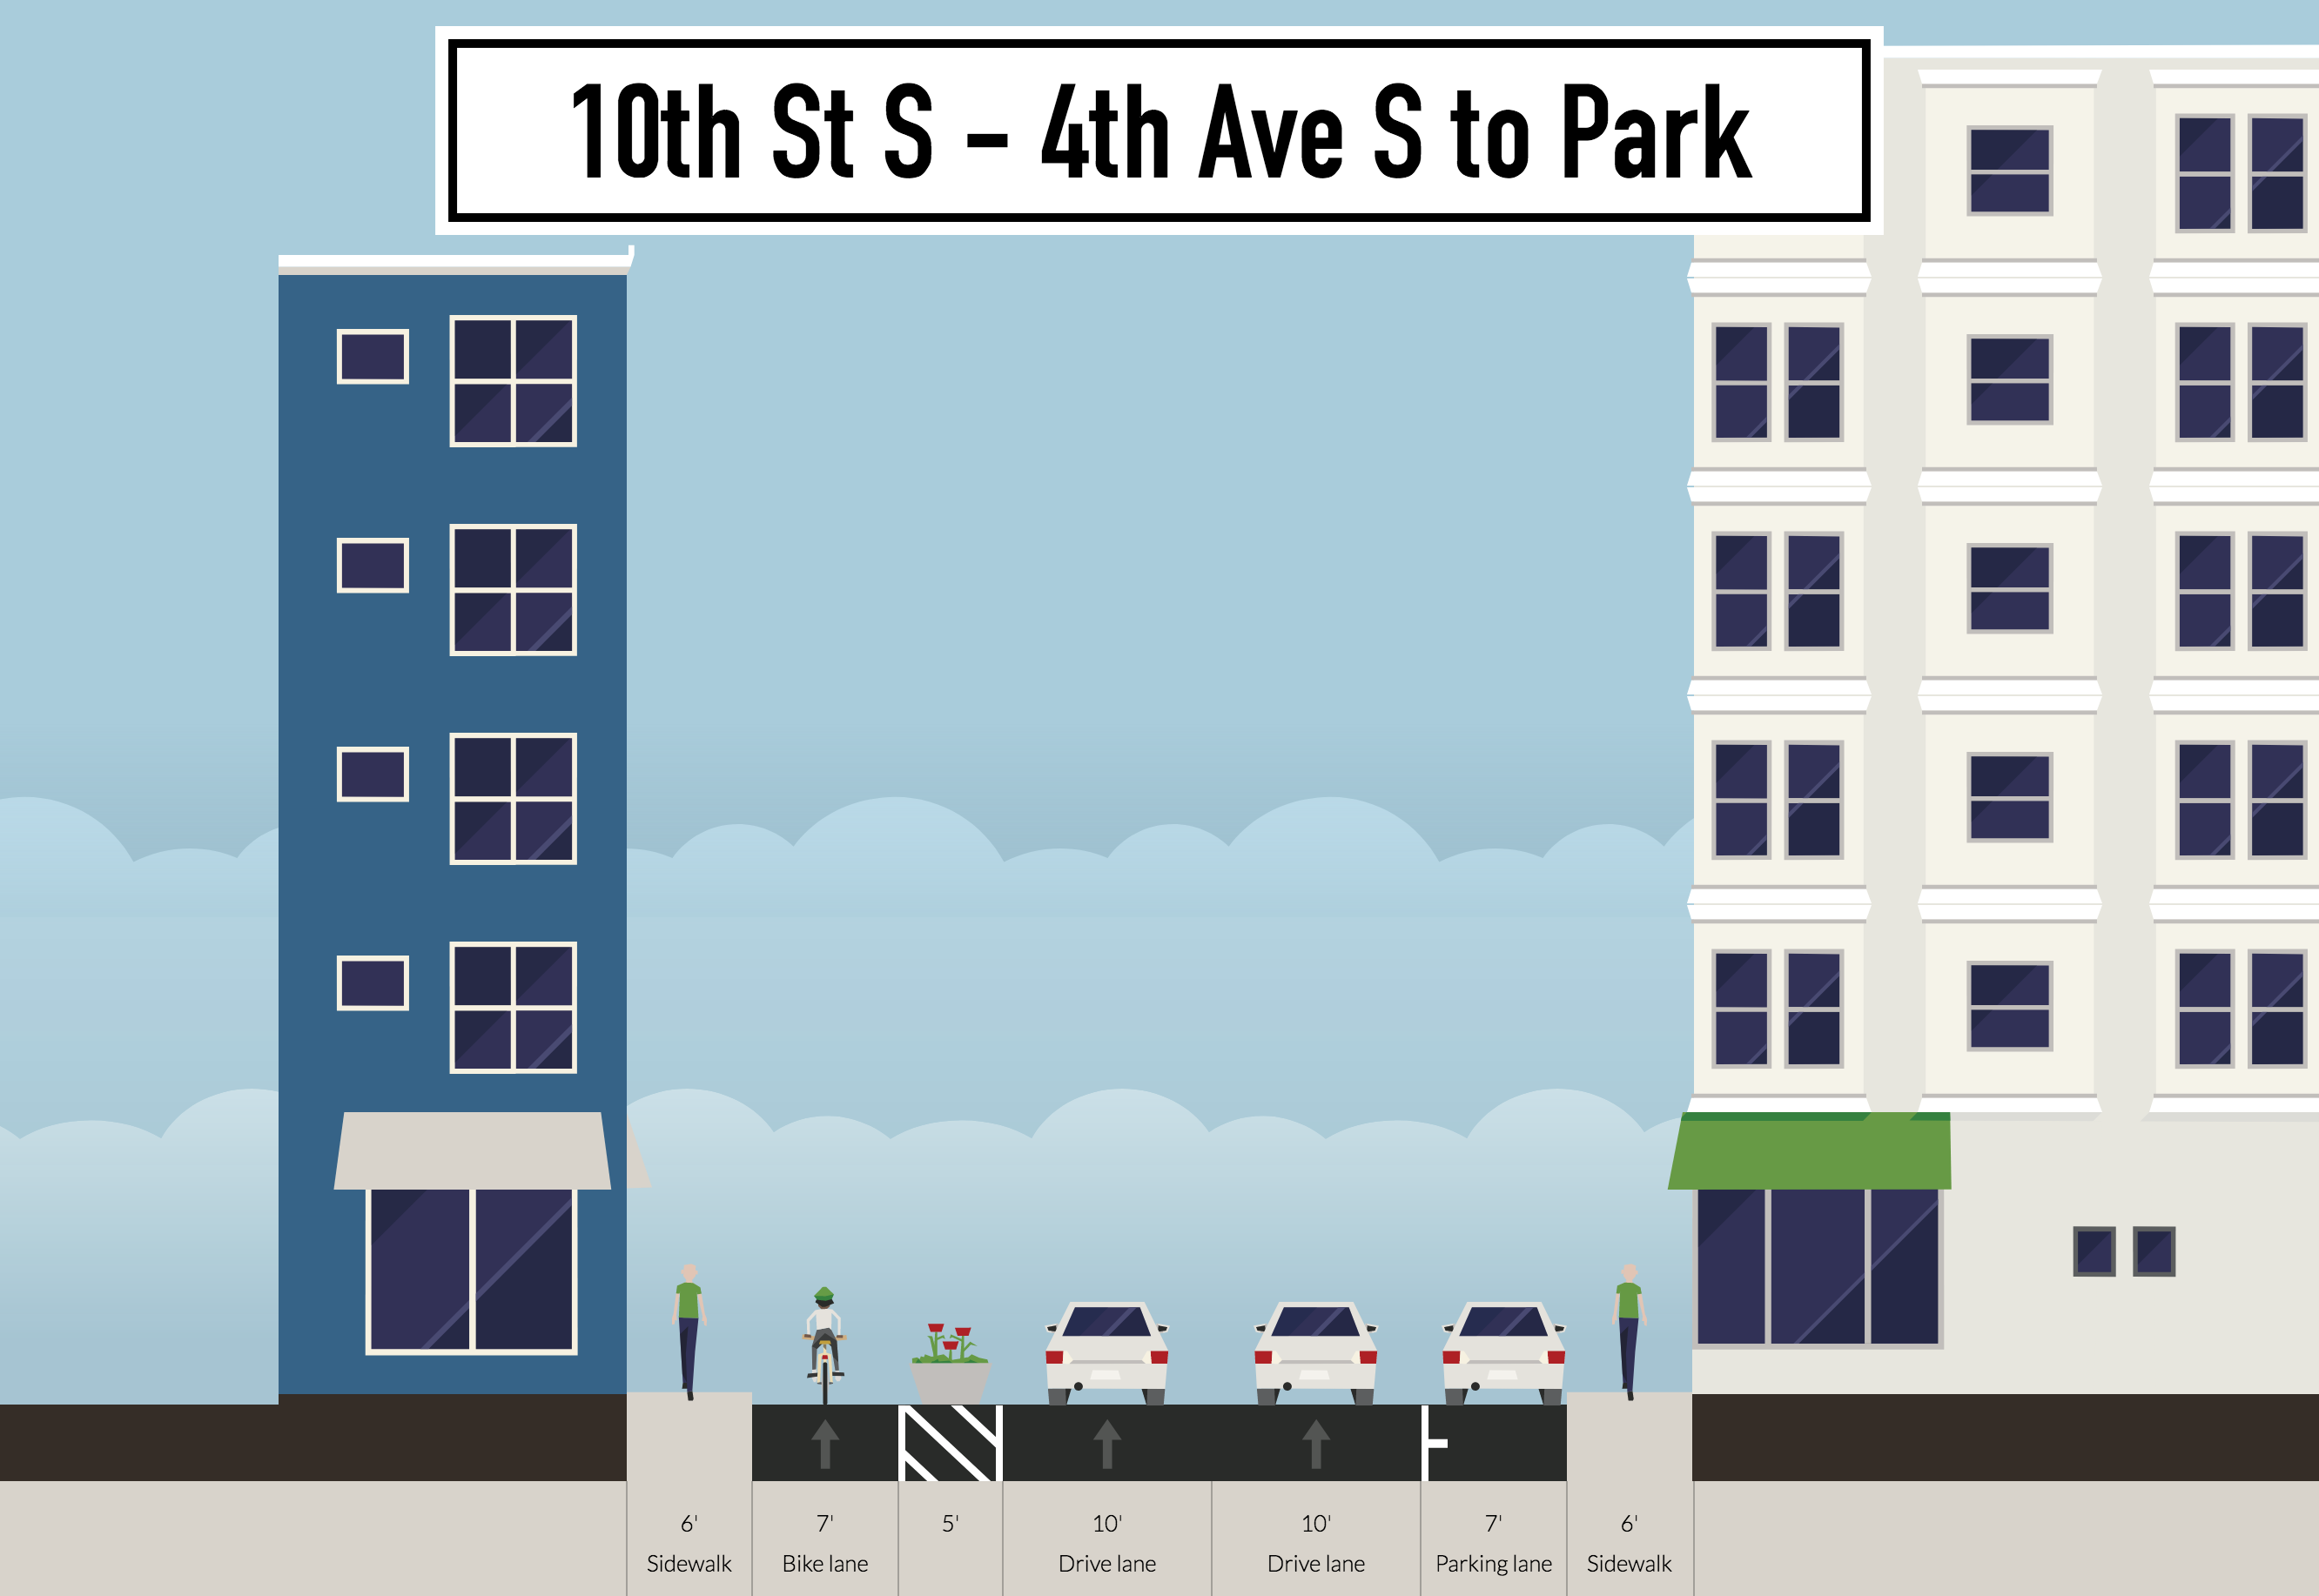 10th-st-s-4th-ave-s-to-park.png